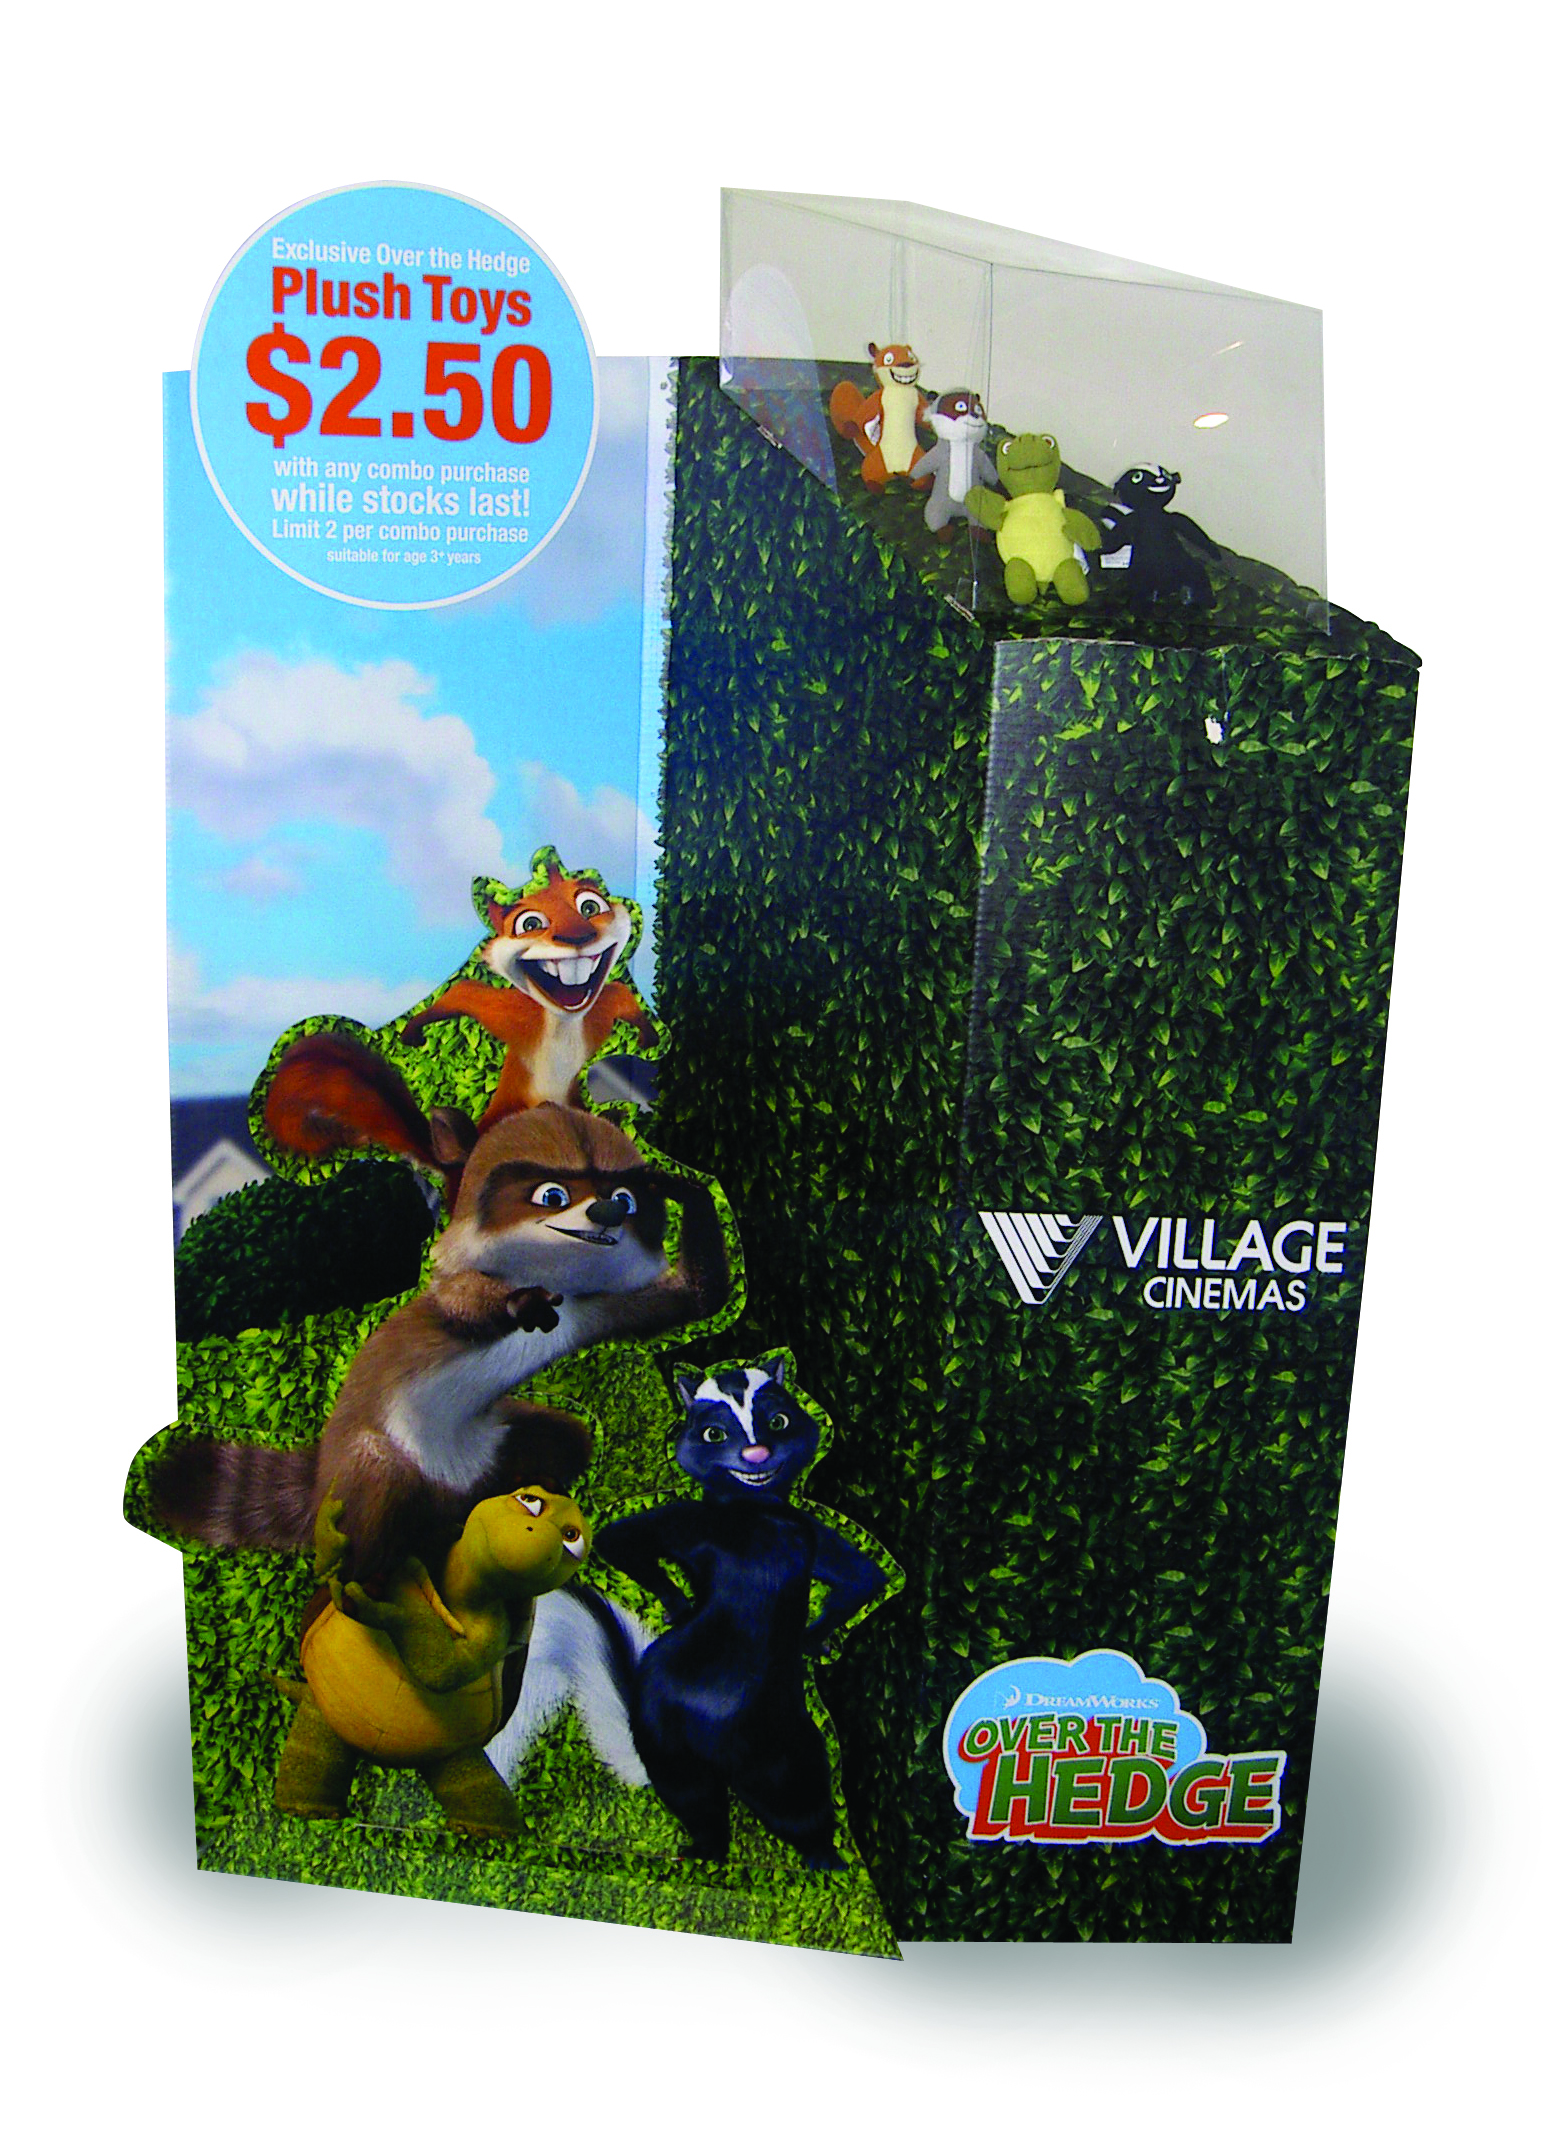 Over the Hedge movie promo